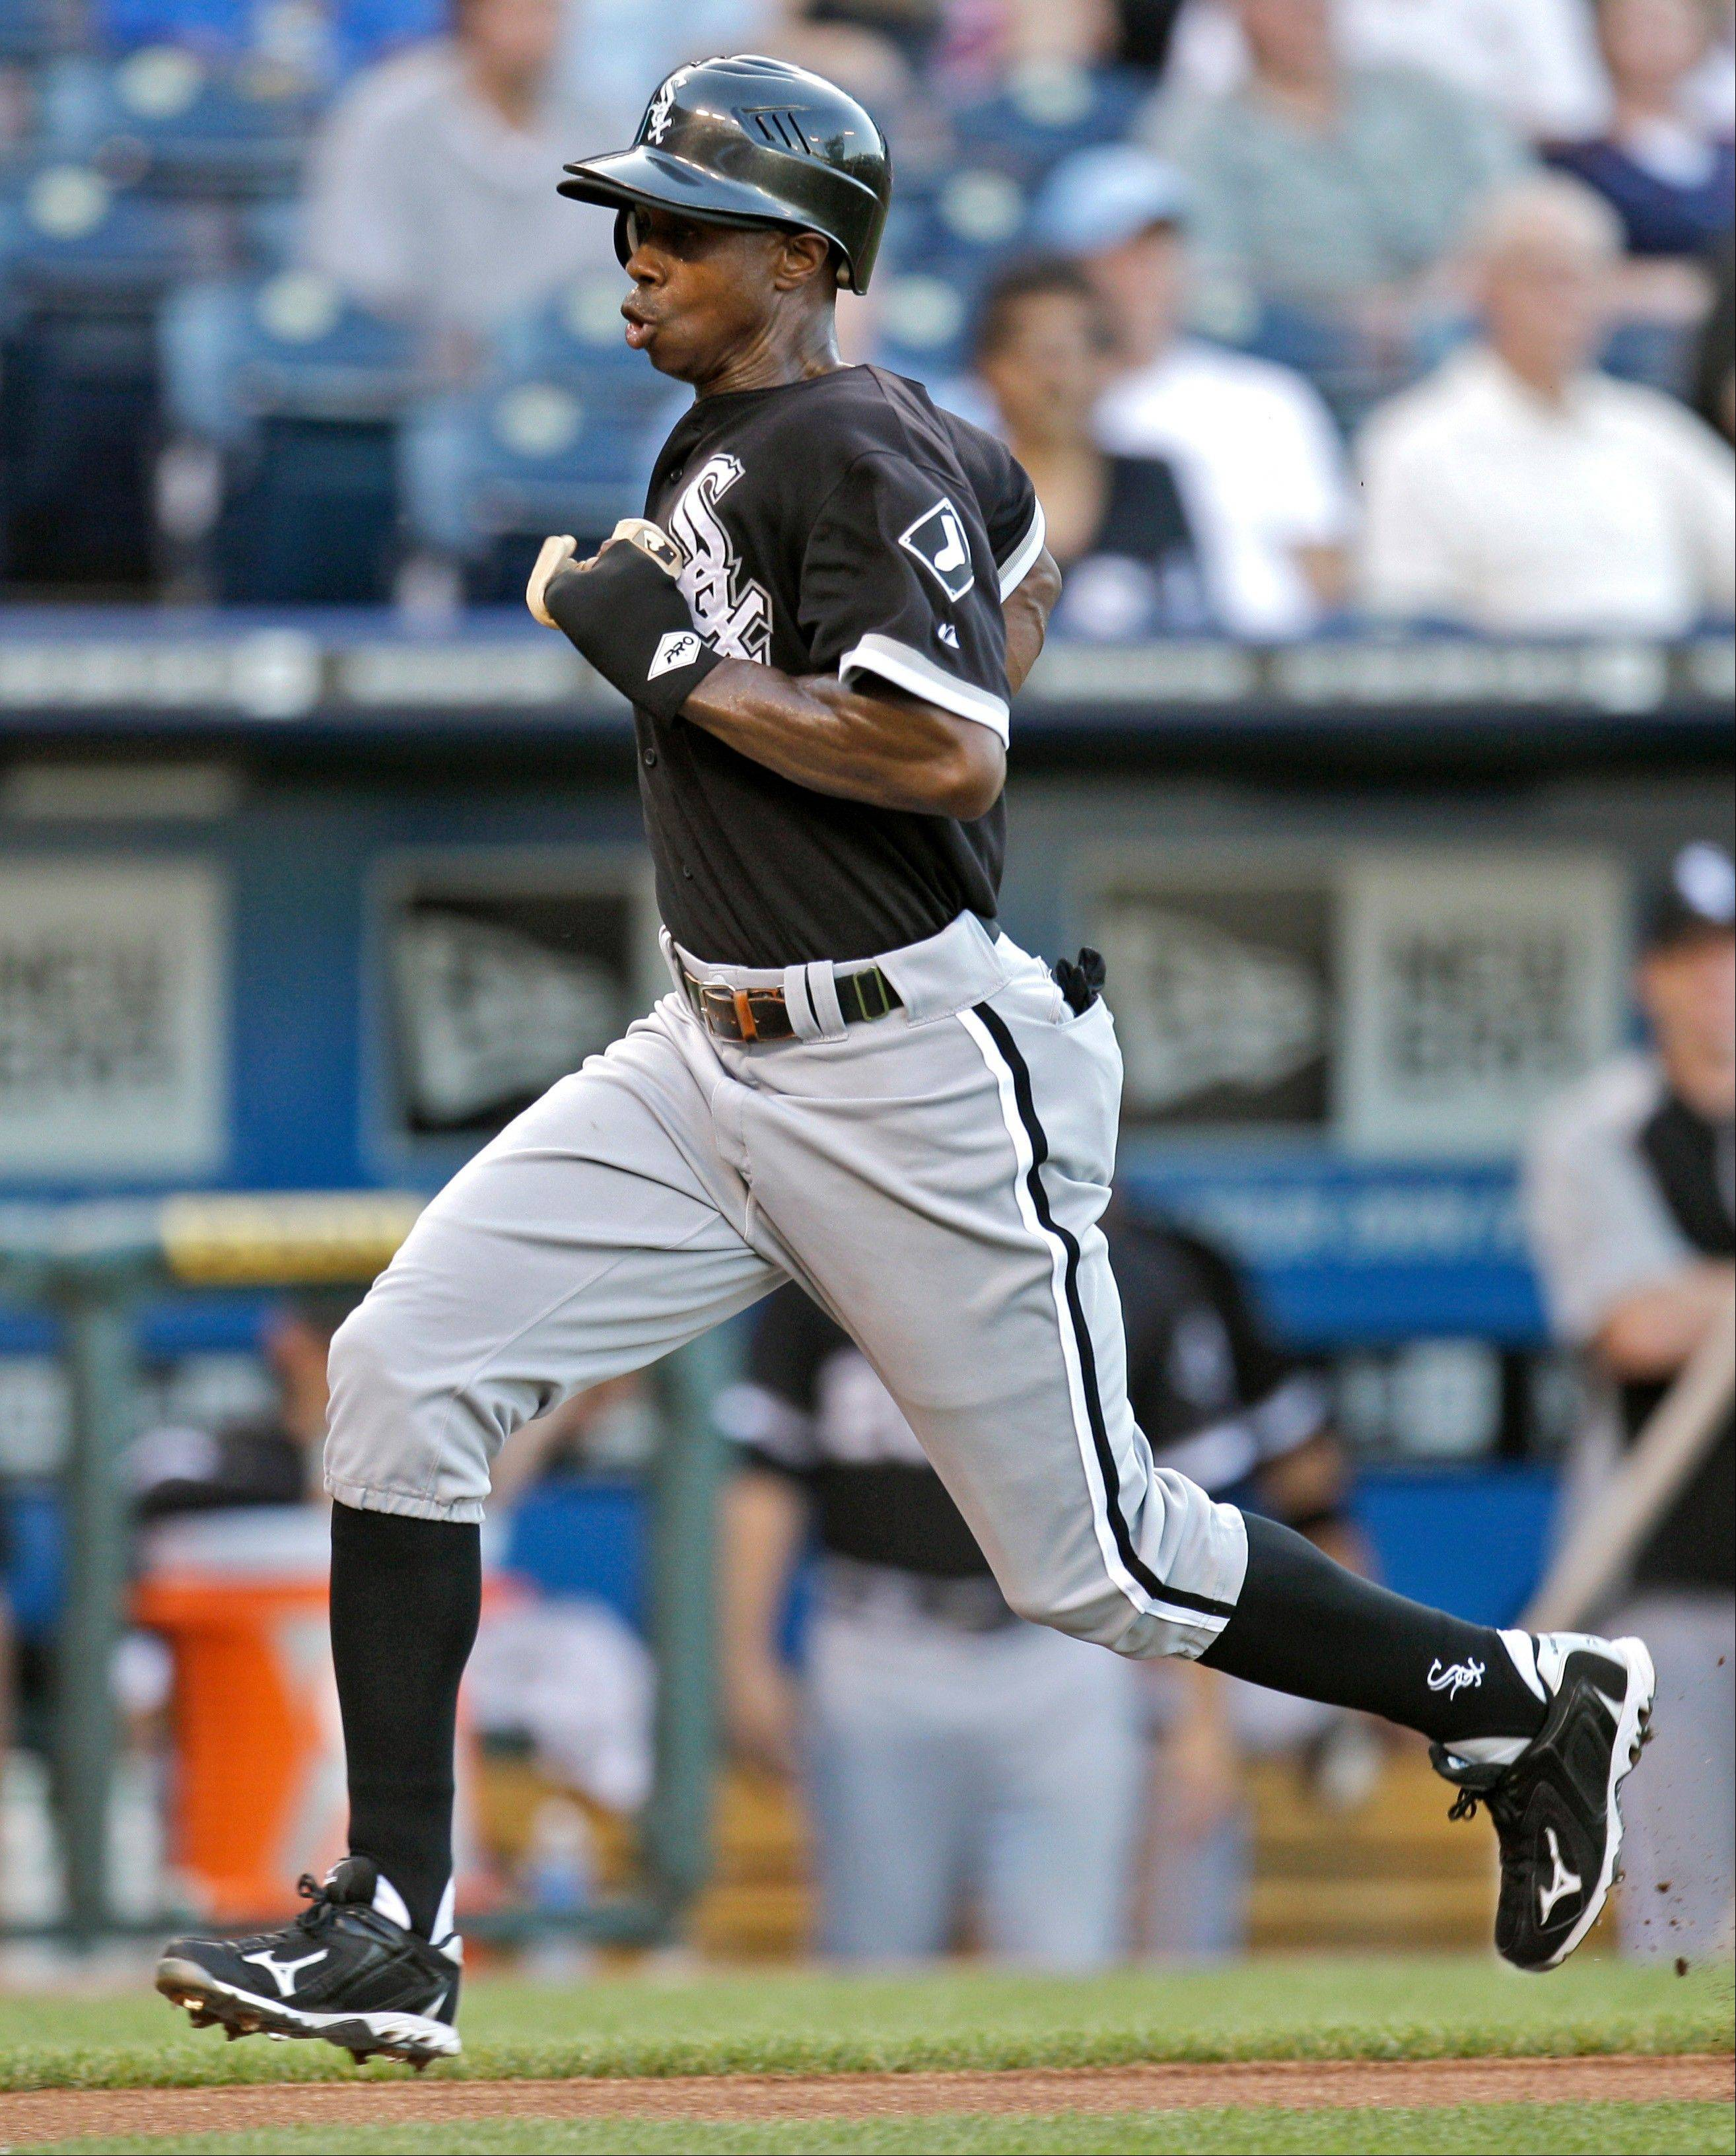 White Sox outfielder Juan Pierre runs home to score on a sacrifice fly by Alexei Ramirez during the first inning Monday in Kansas City.